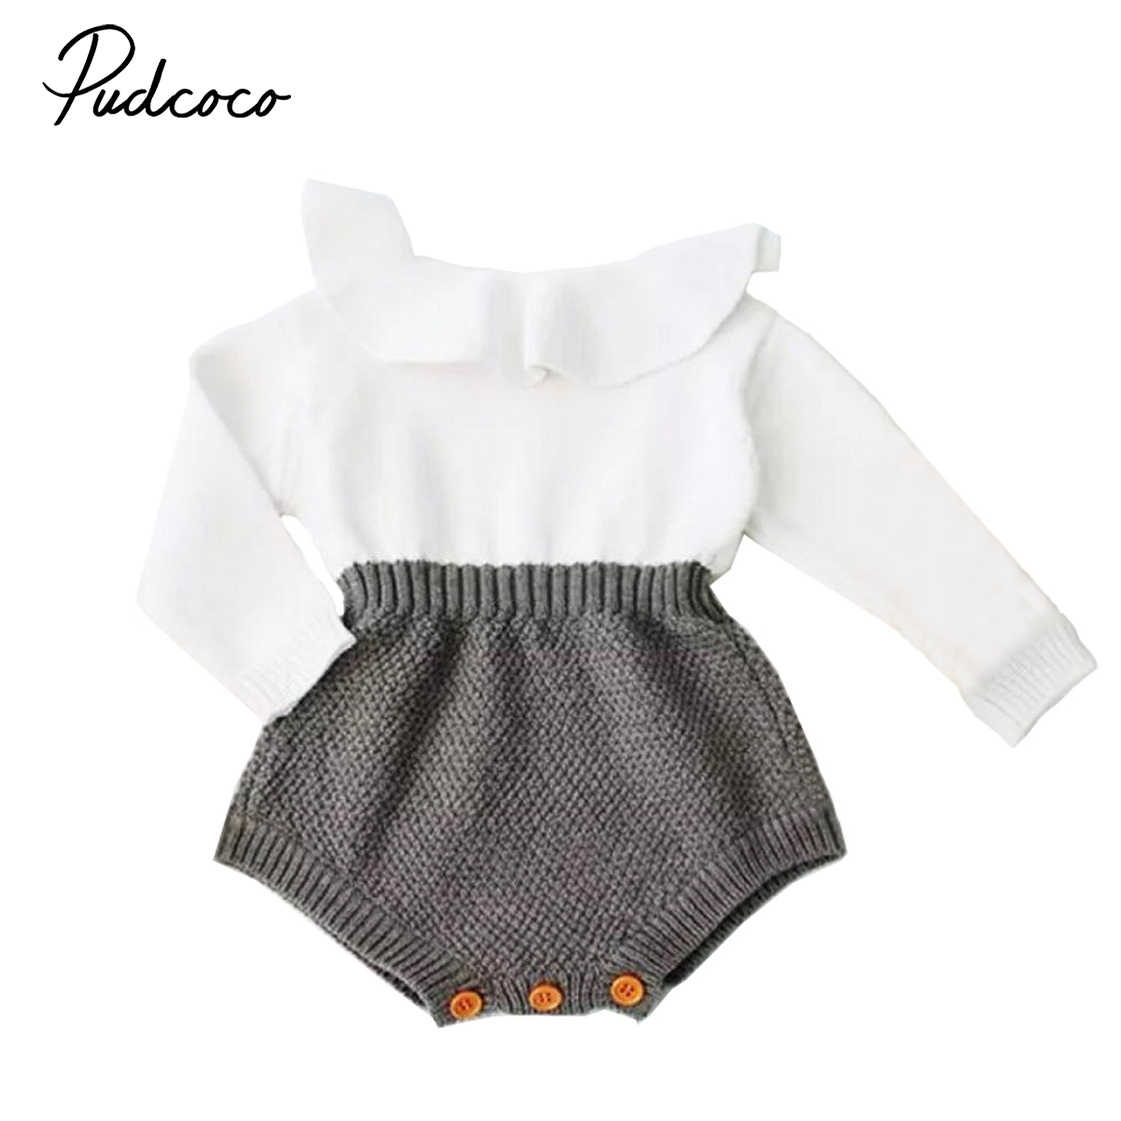 89c846e678346 Cute Newborn Baby Girls Wool Knitting Patchwork Tops Long Sleeve Ruffle  Romper Shorts Warm Outfits Clothes